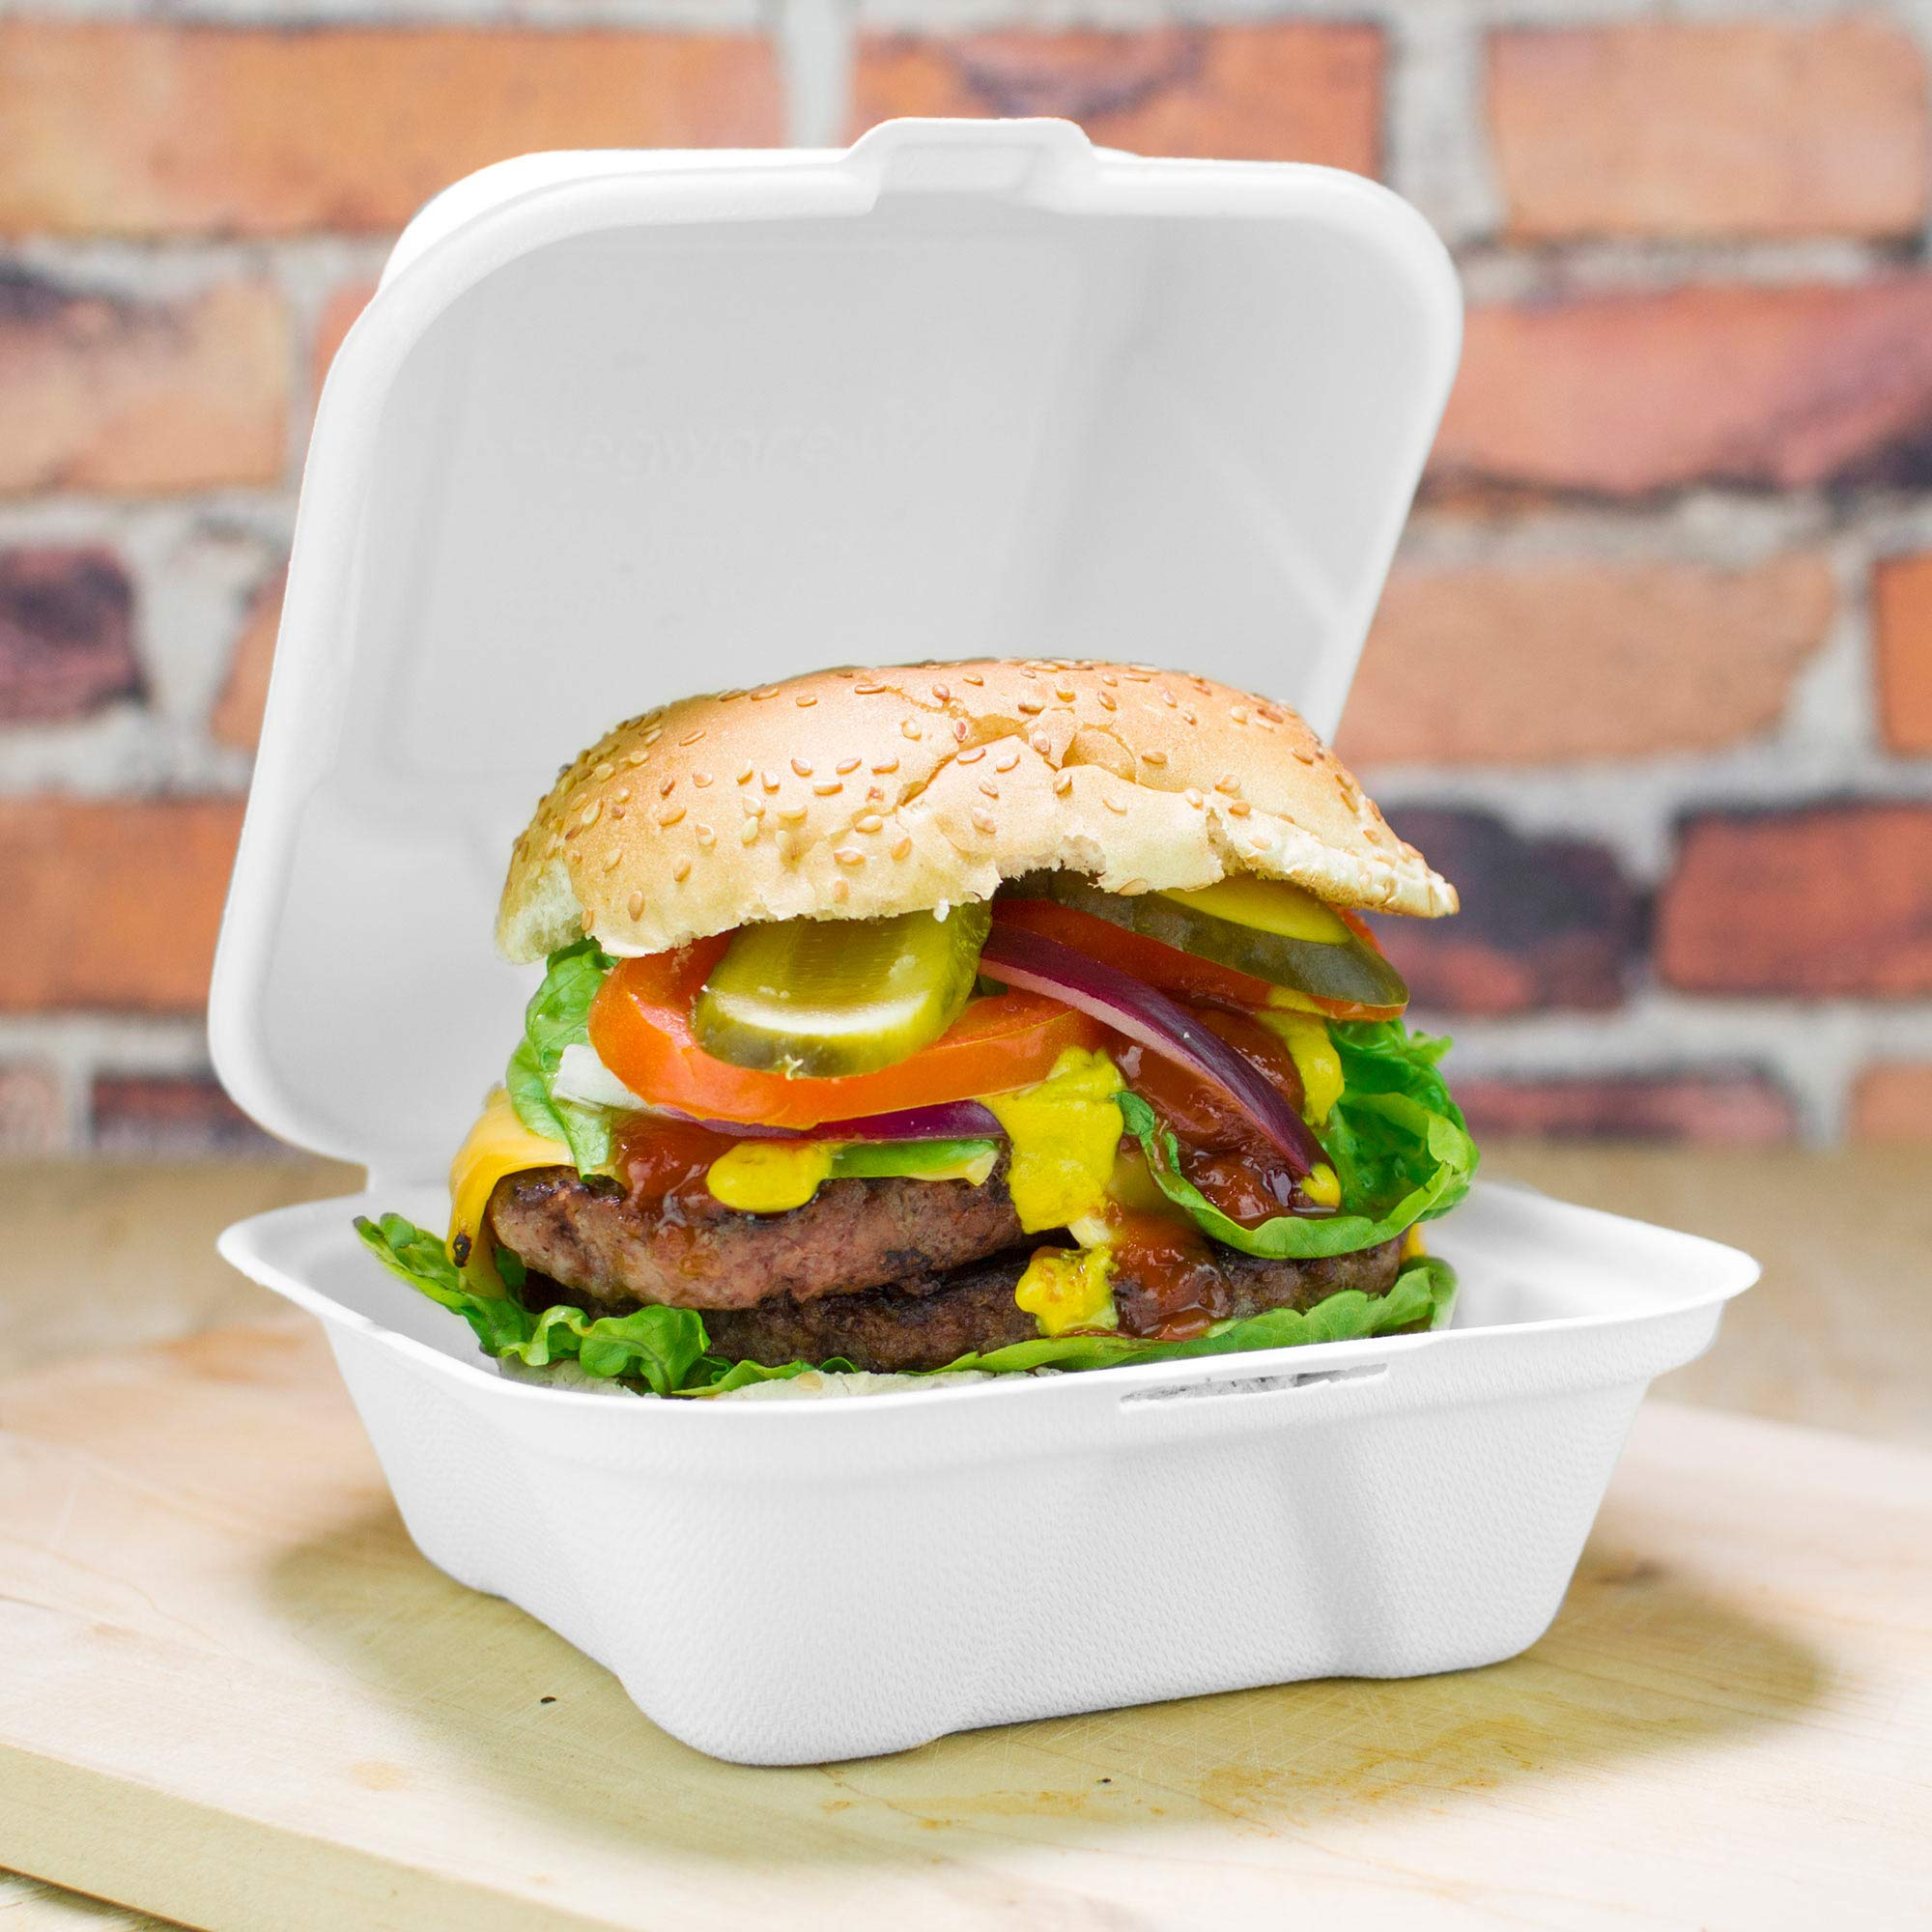 Clamshell Bagasse Takeaway Burger Box 6 Inch - Set of 50 - Eco-Friendly Food Boxes